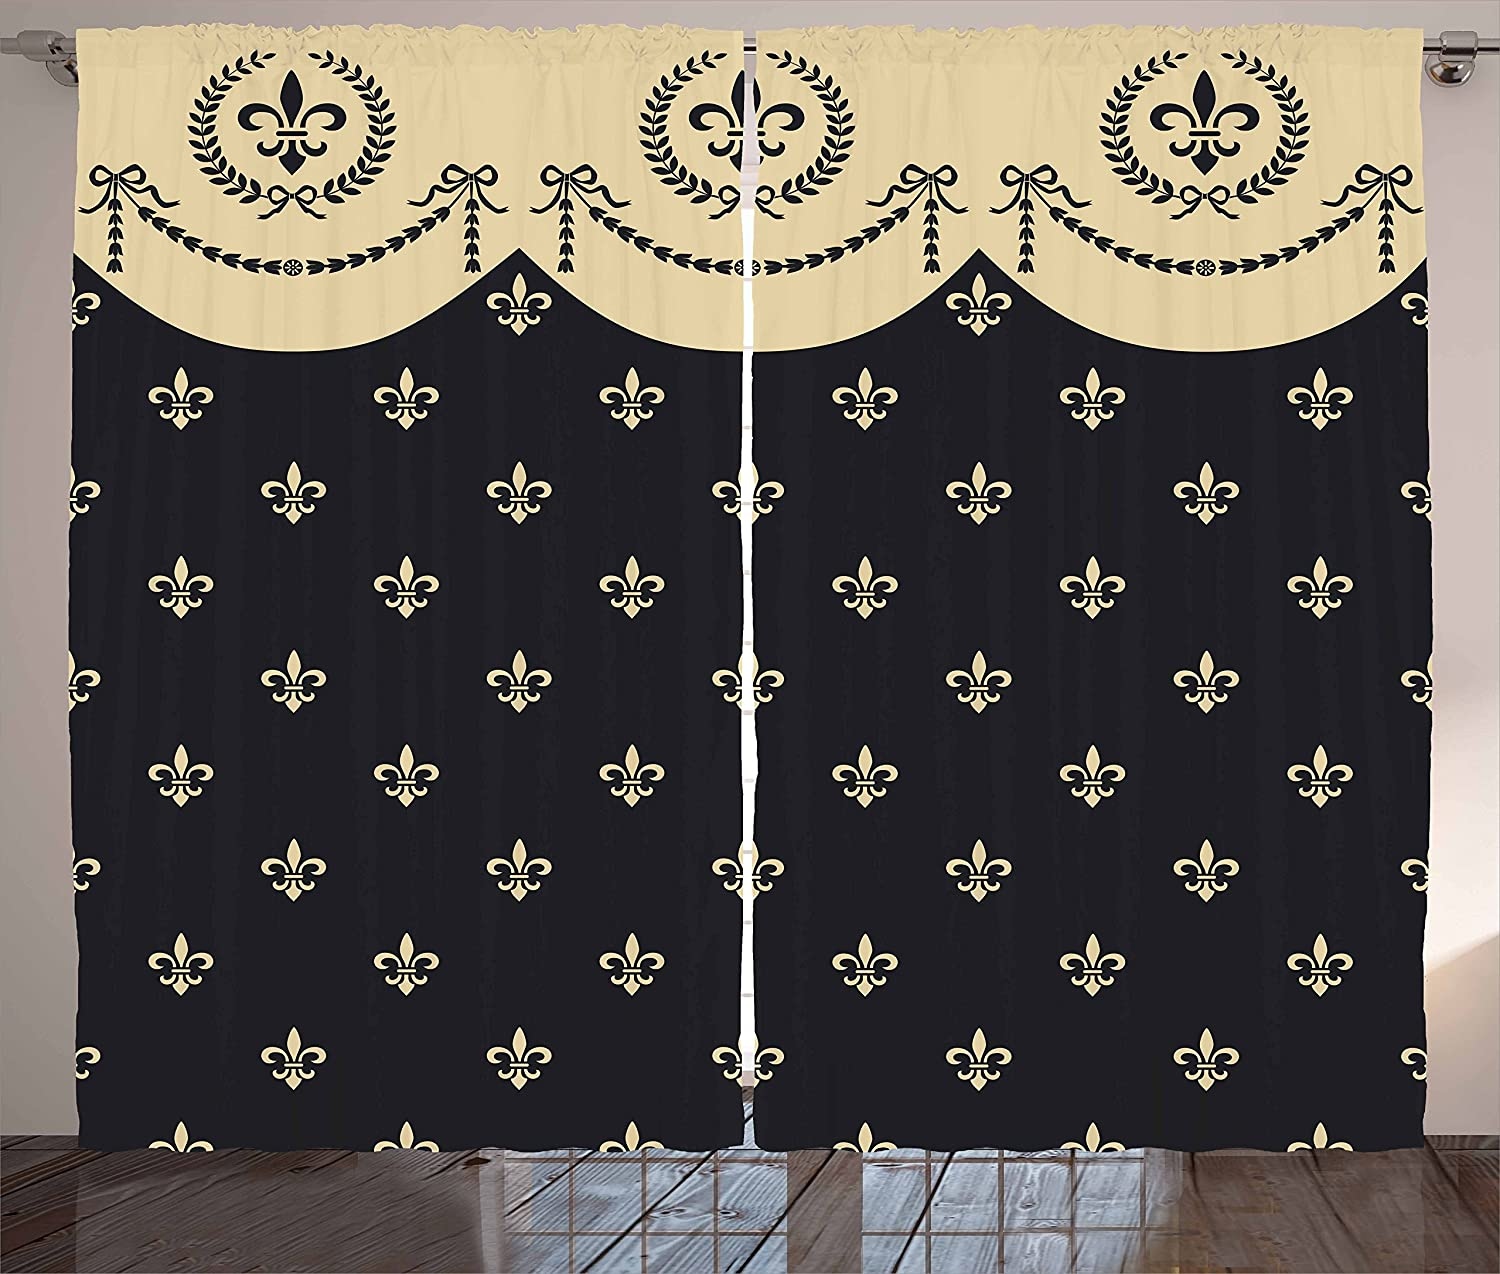 Ambesonne French Curtains, Pattern of Fleur de Lis Illustration Baroque Inspired Print, Living Room Bedroom Window Drapes 2 Panel Set, 108